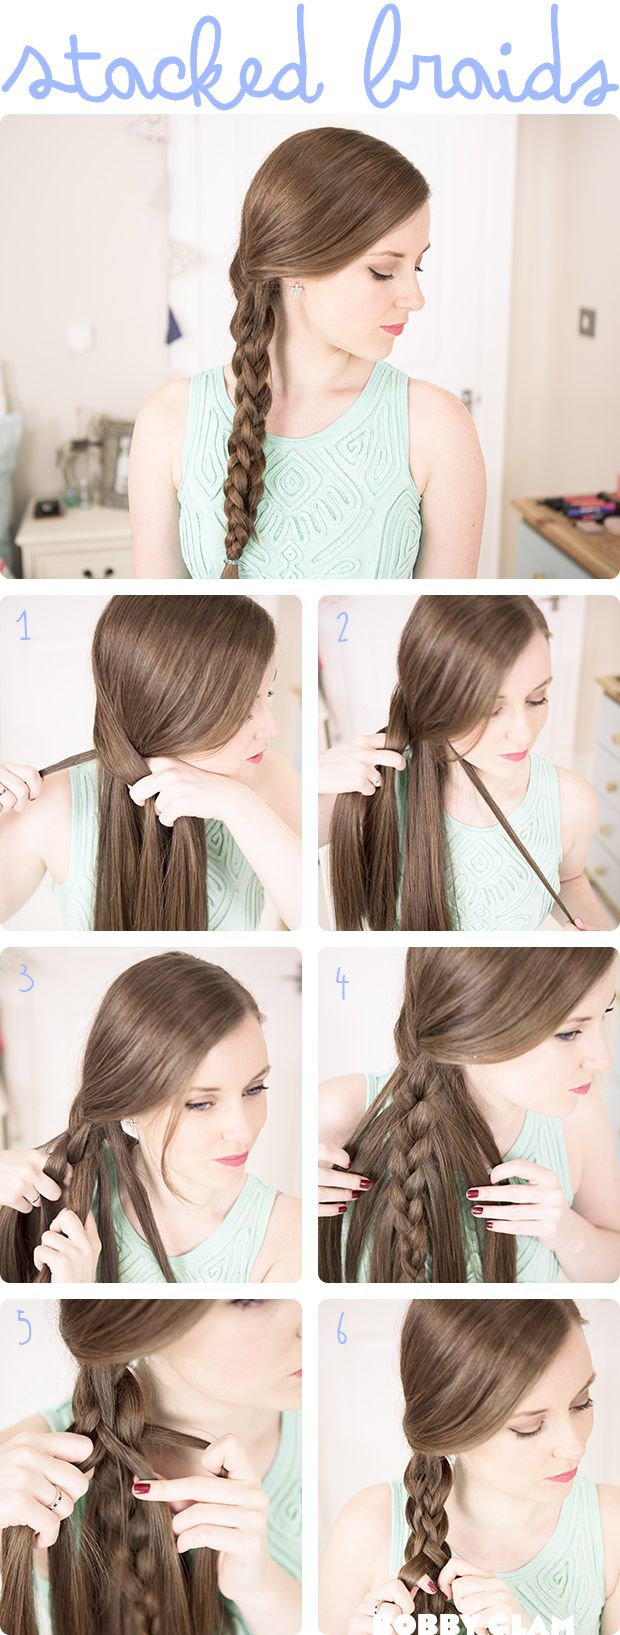 Stacked Braids: Need to try this; looks pretty cool!